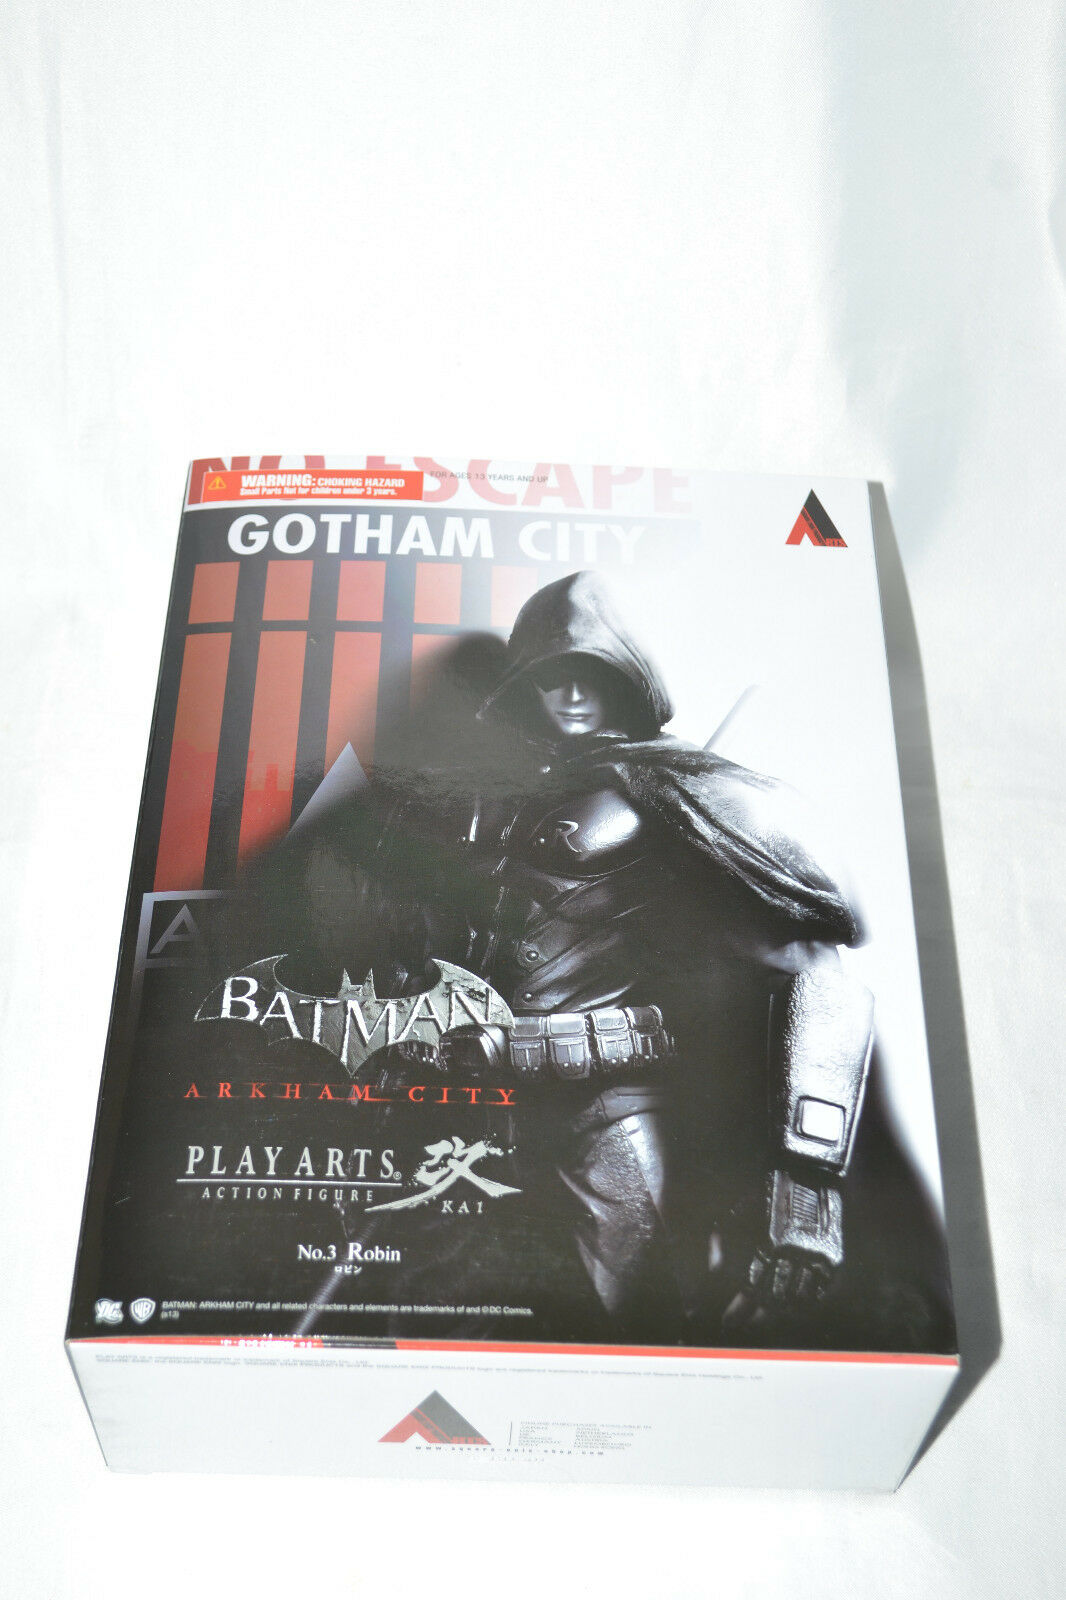 Square Square Square Enix DC Play Arts Kai Batman Arkham City N°3 Robin New be951a